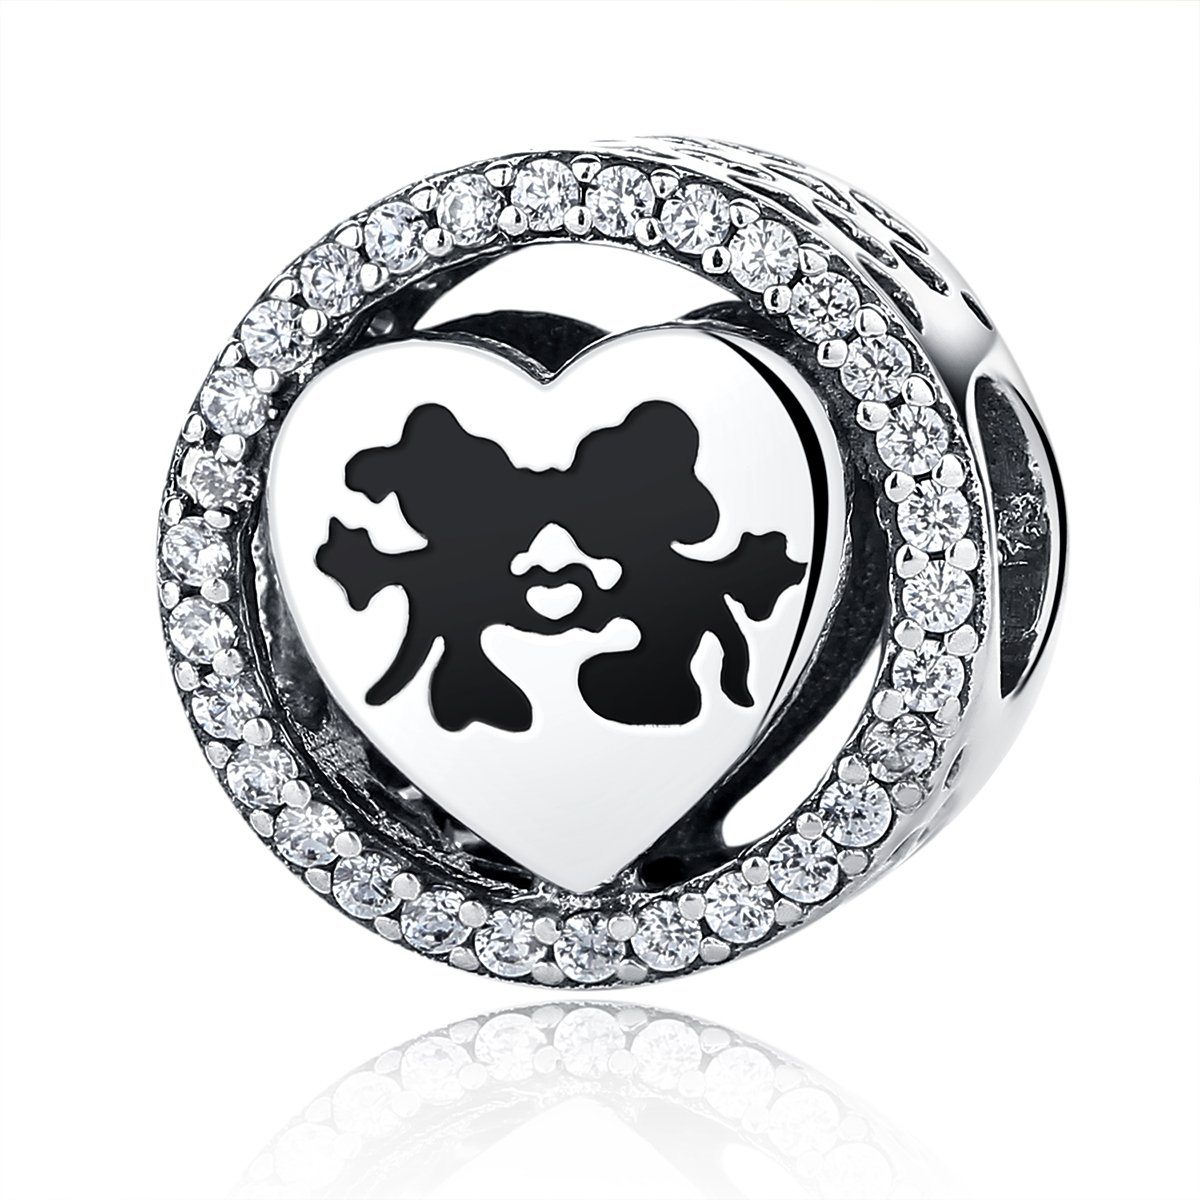 NINGAN Disney, Mickey & Minnie Love, Charm Clear CZ 925 Sterling Silver Charms Fit Pandora & Other European Charm by NINGAN